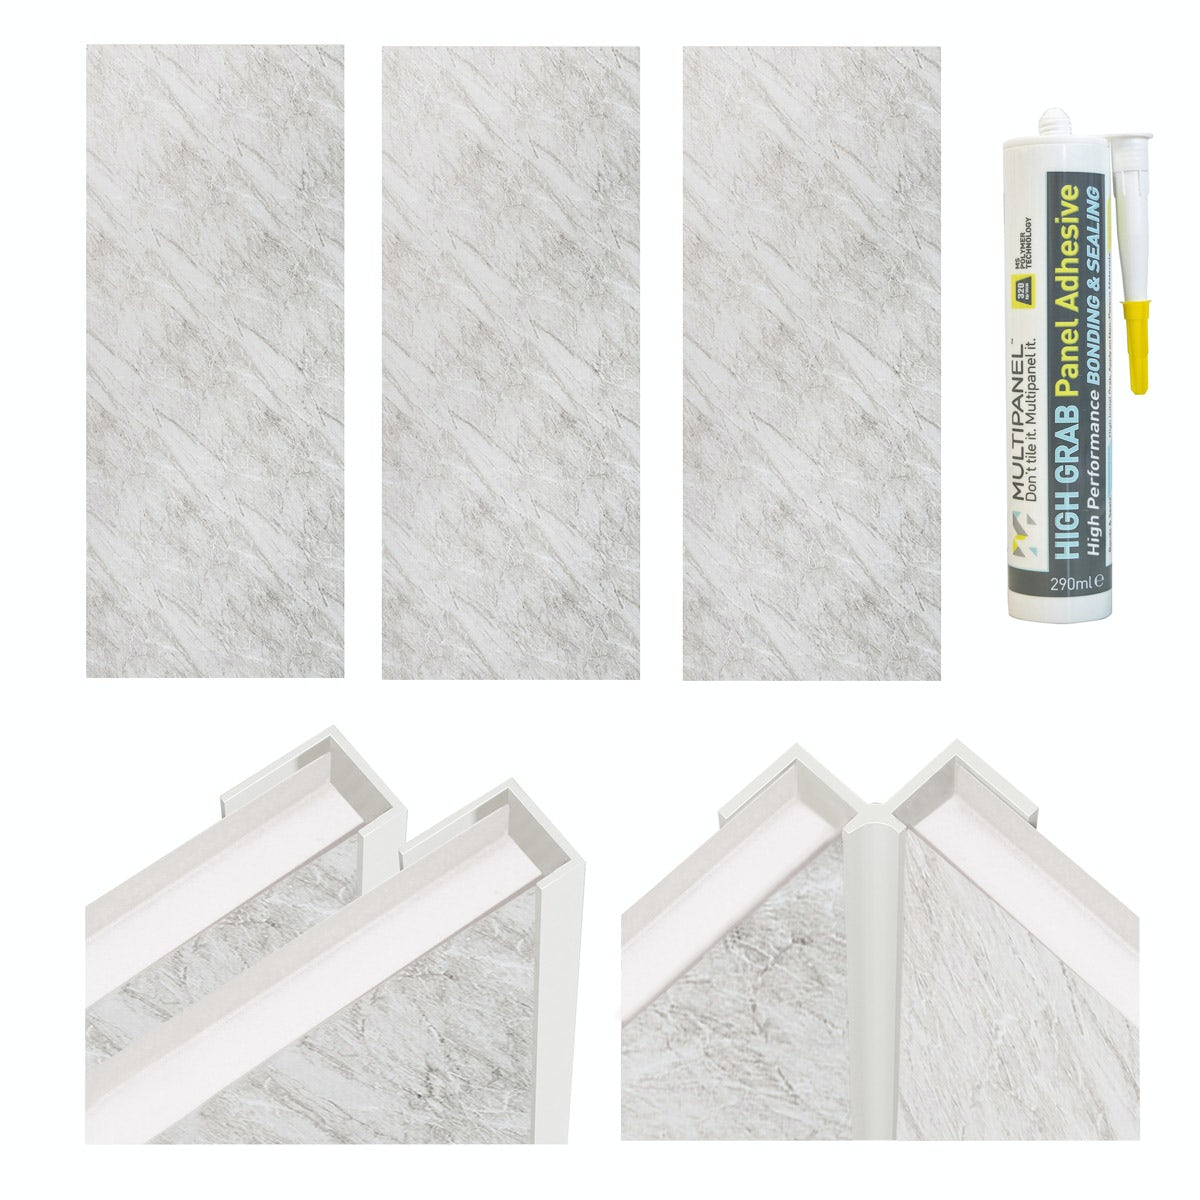 Multipanel Economy Roman Marble shower wall panel installation set for enclosures over 1000 x 1000